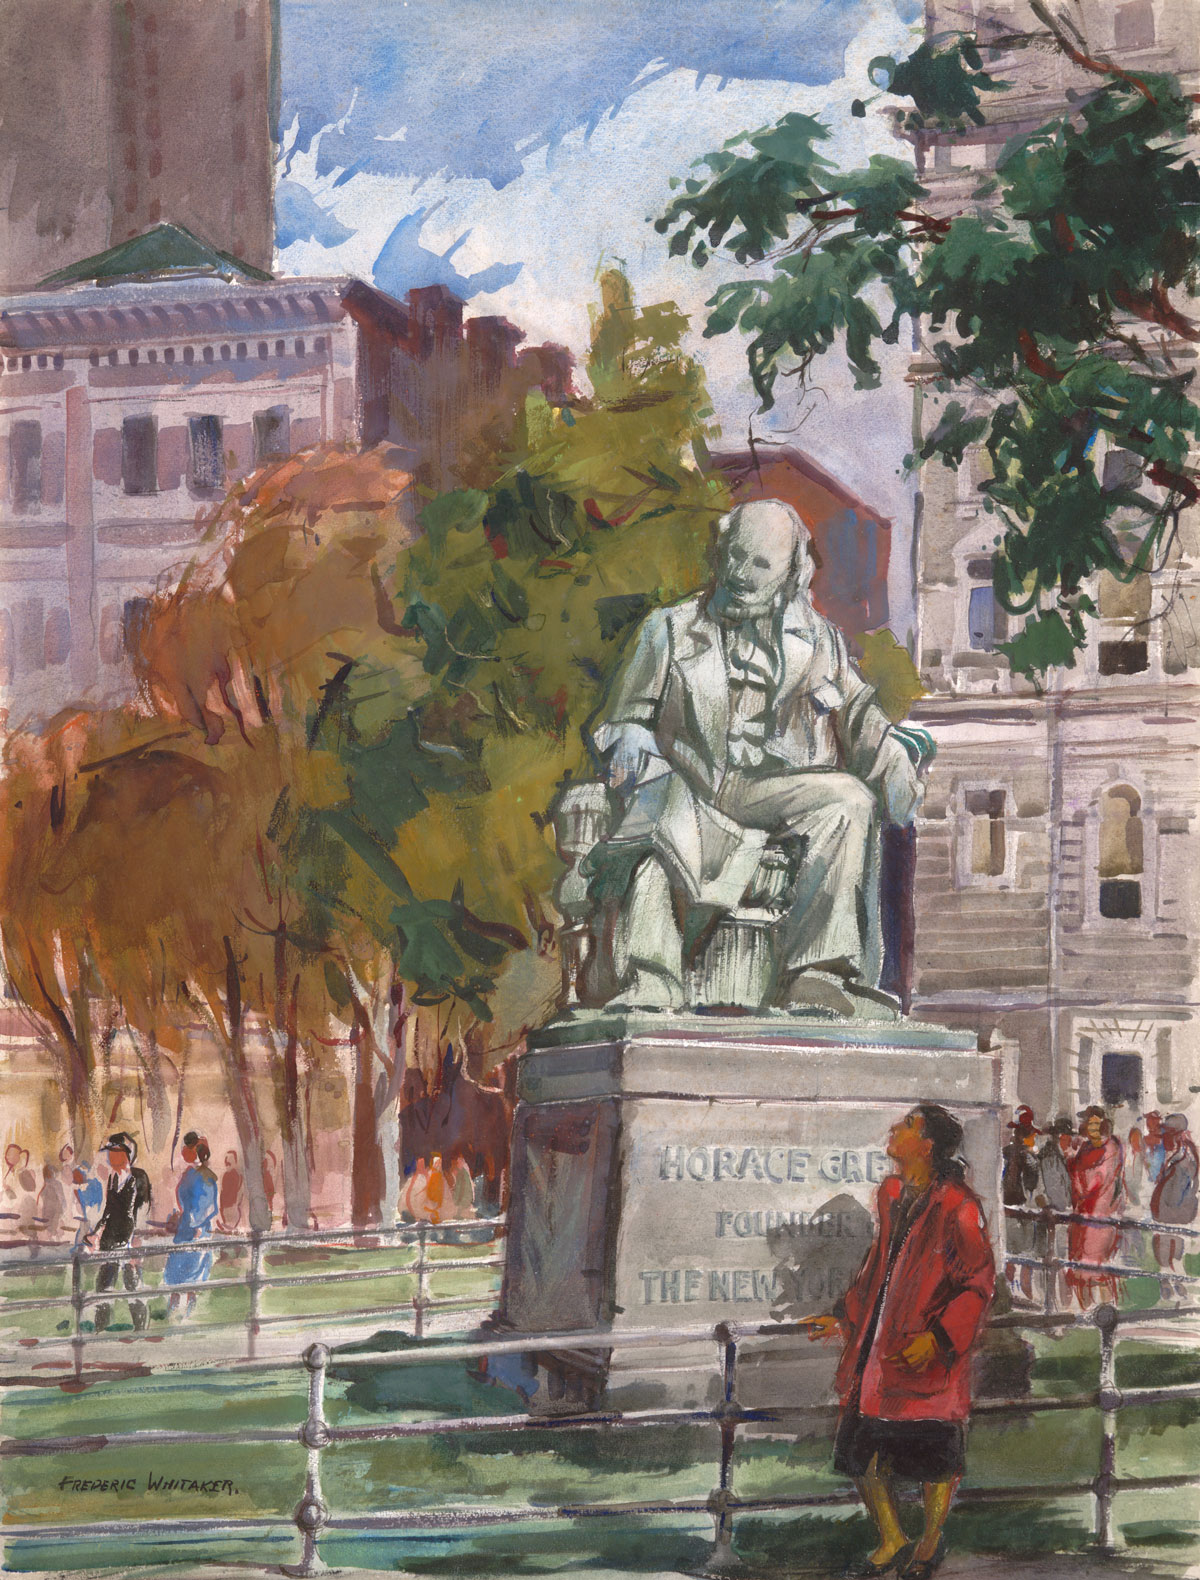 """""""Horace Greeley Statue"""" © Frederic Whitaker 1940s 28.85 x 22 inches watercolor"""